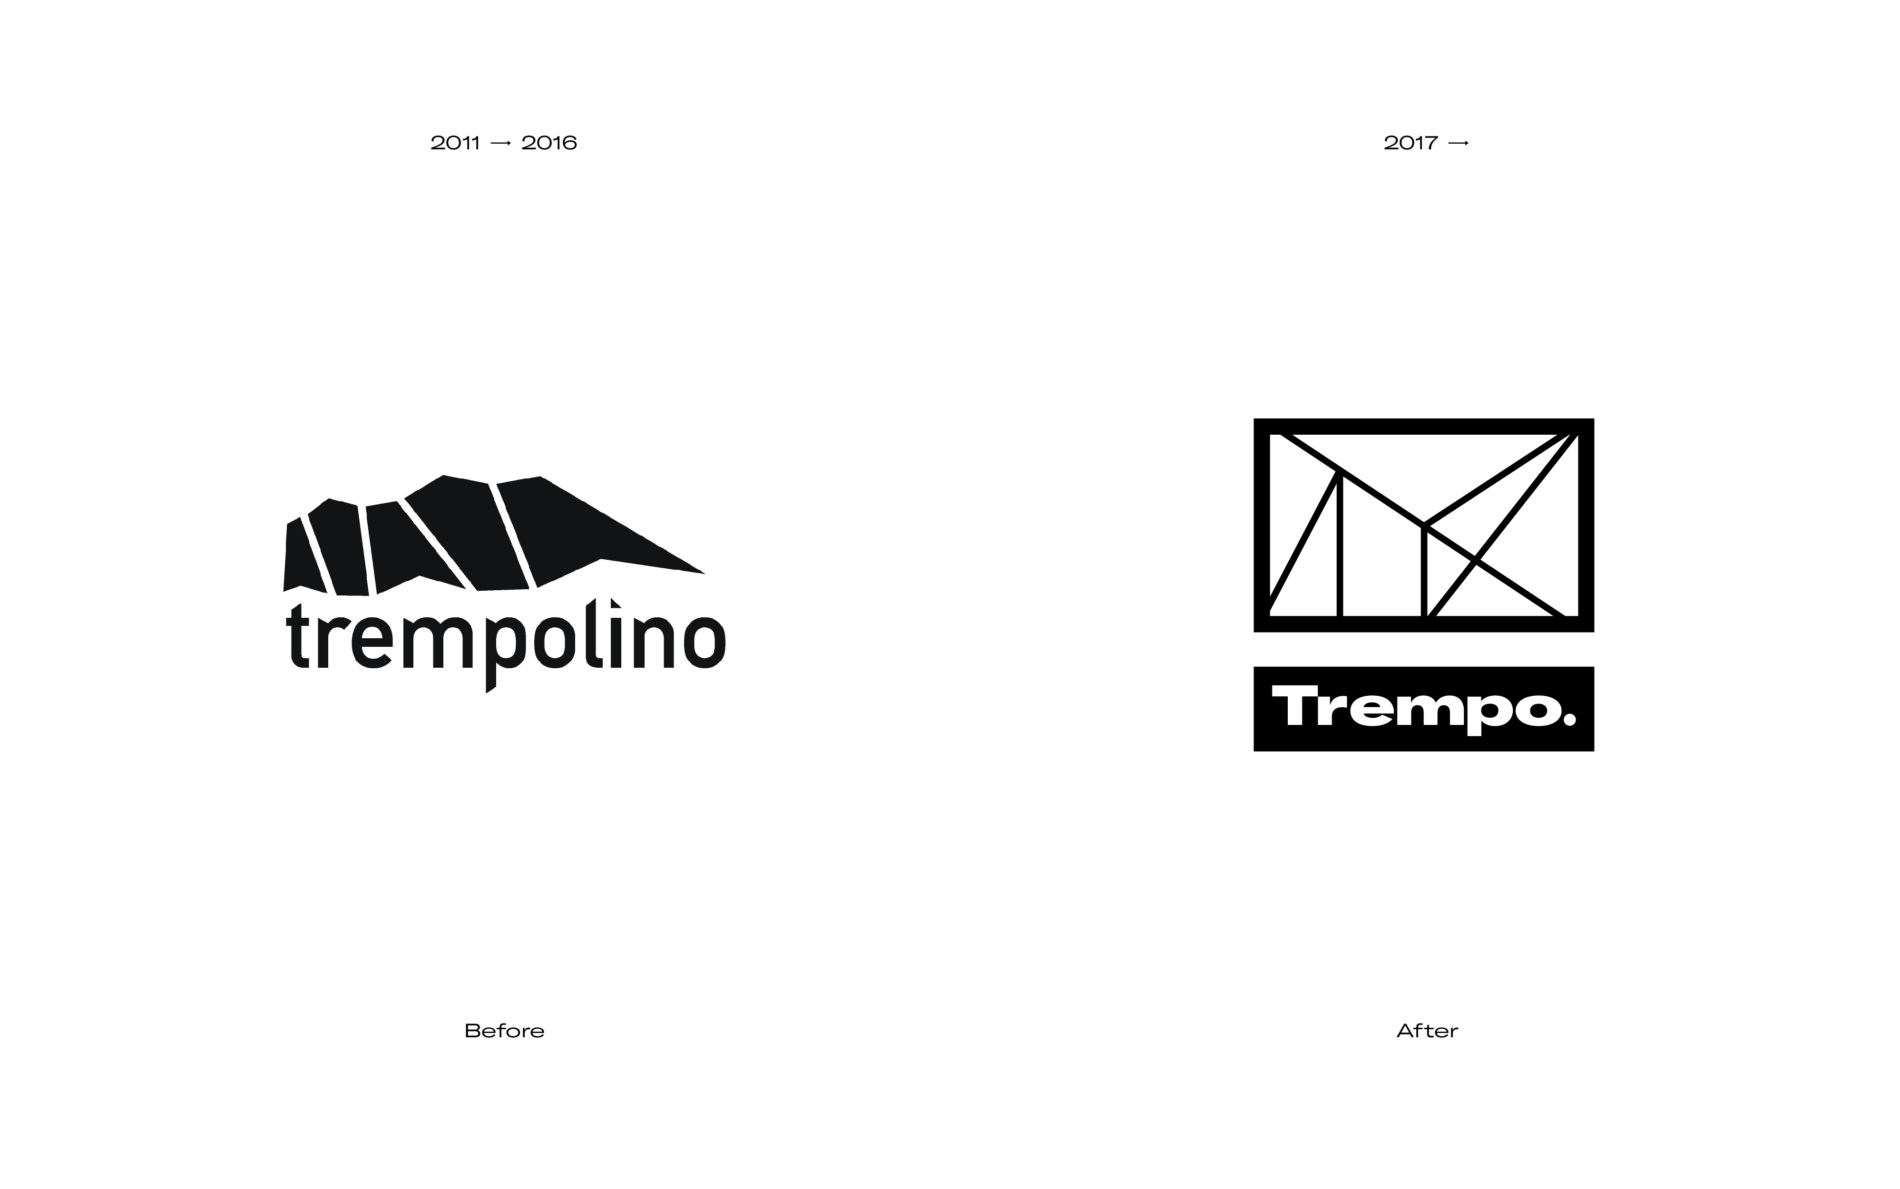 Illustration of the project Trempo